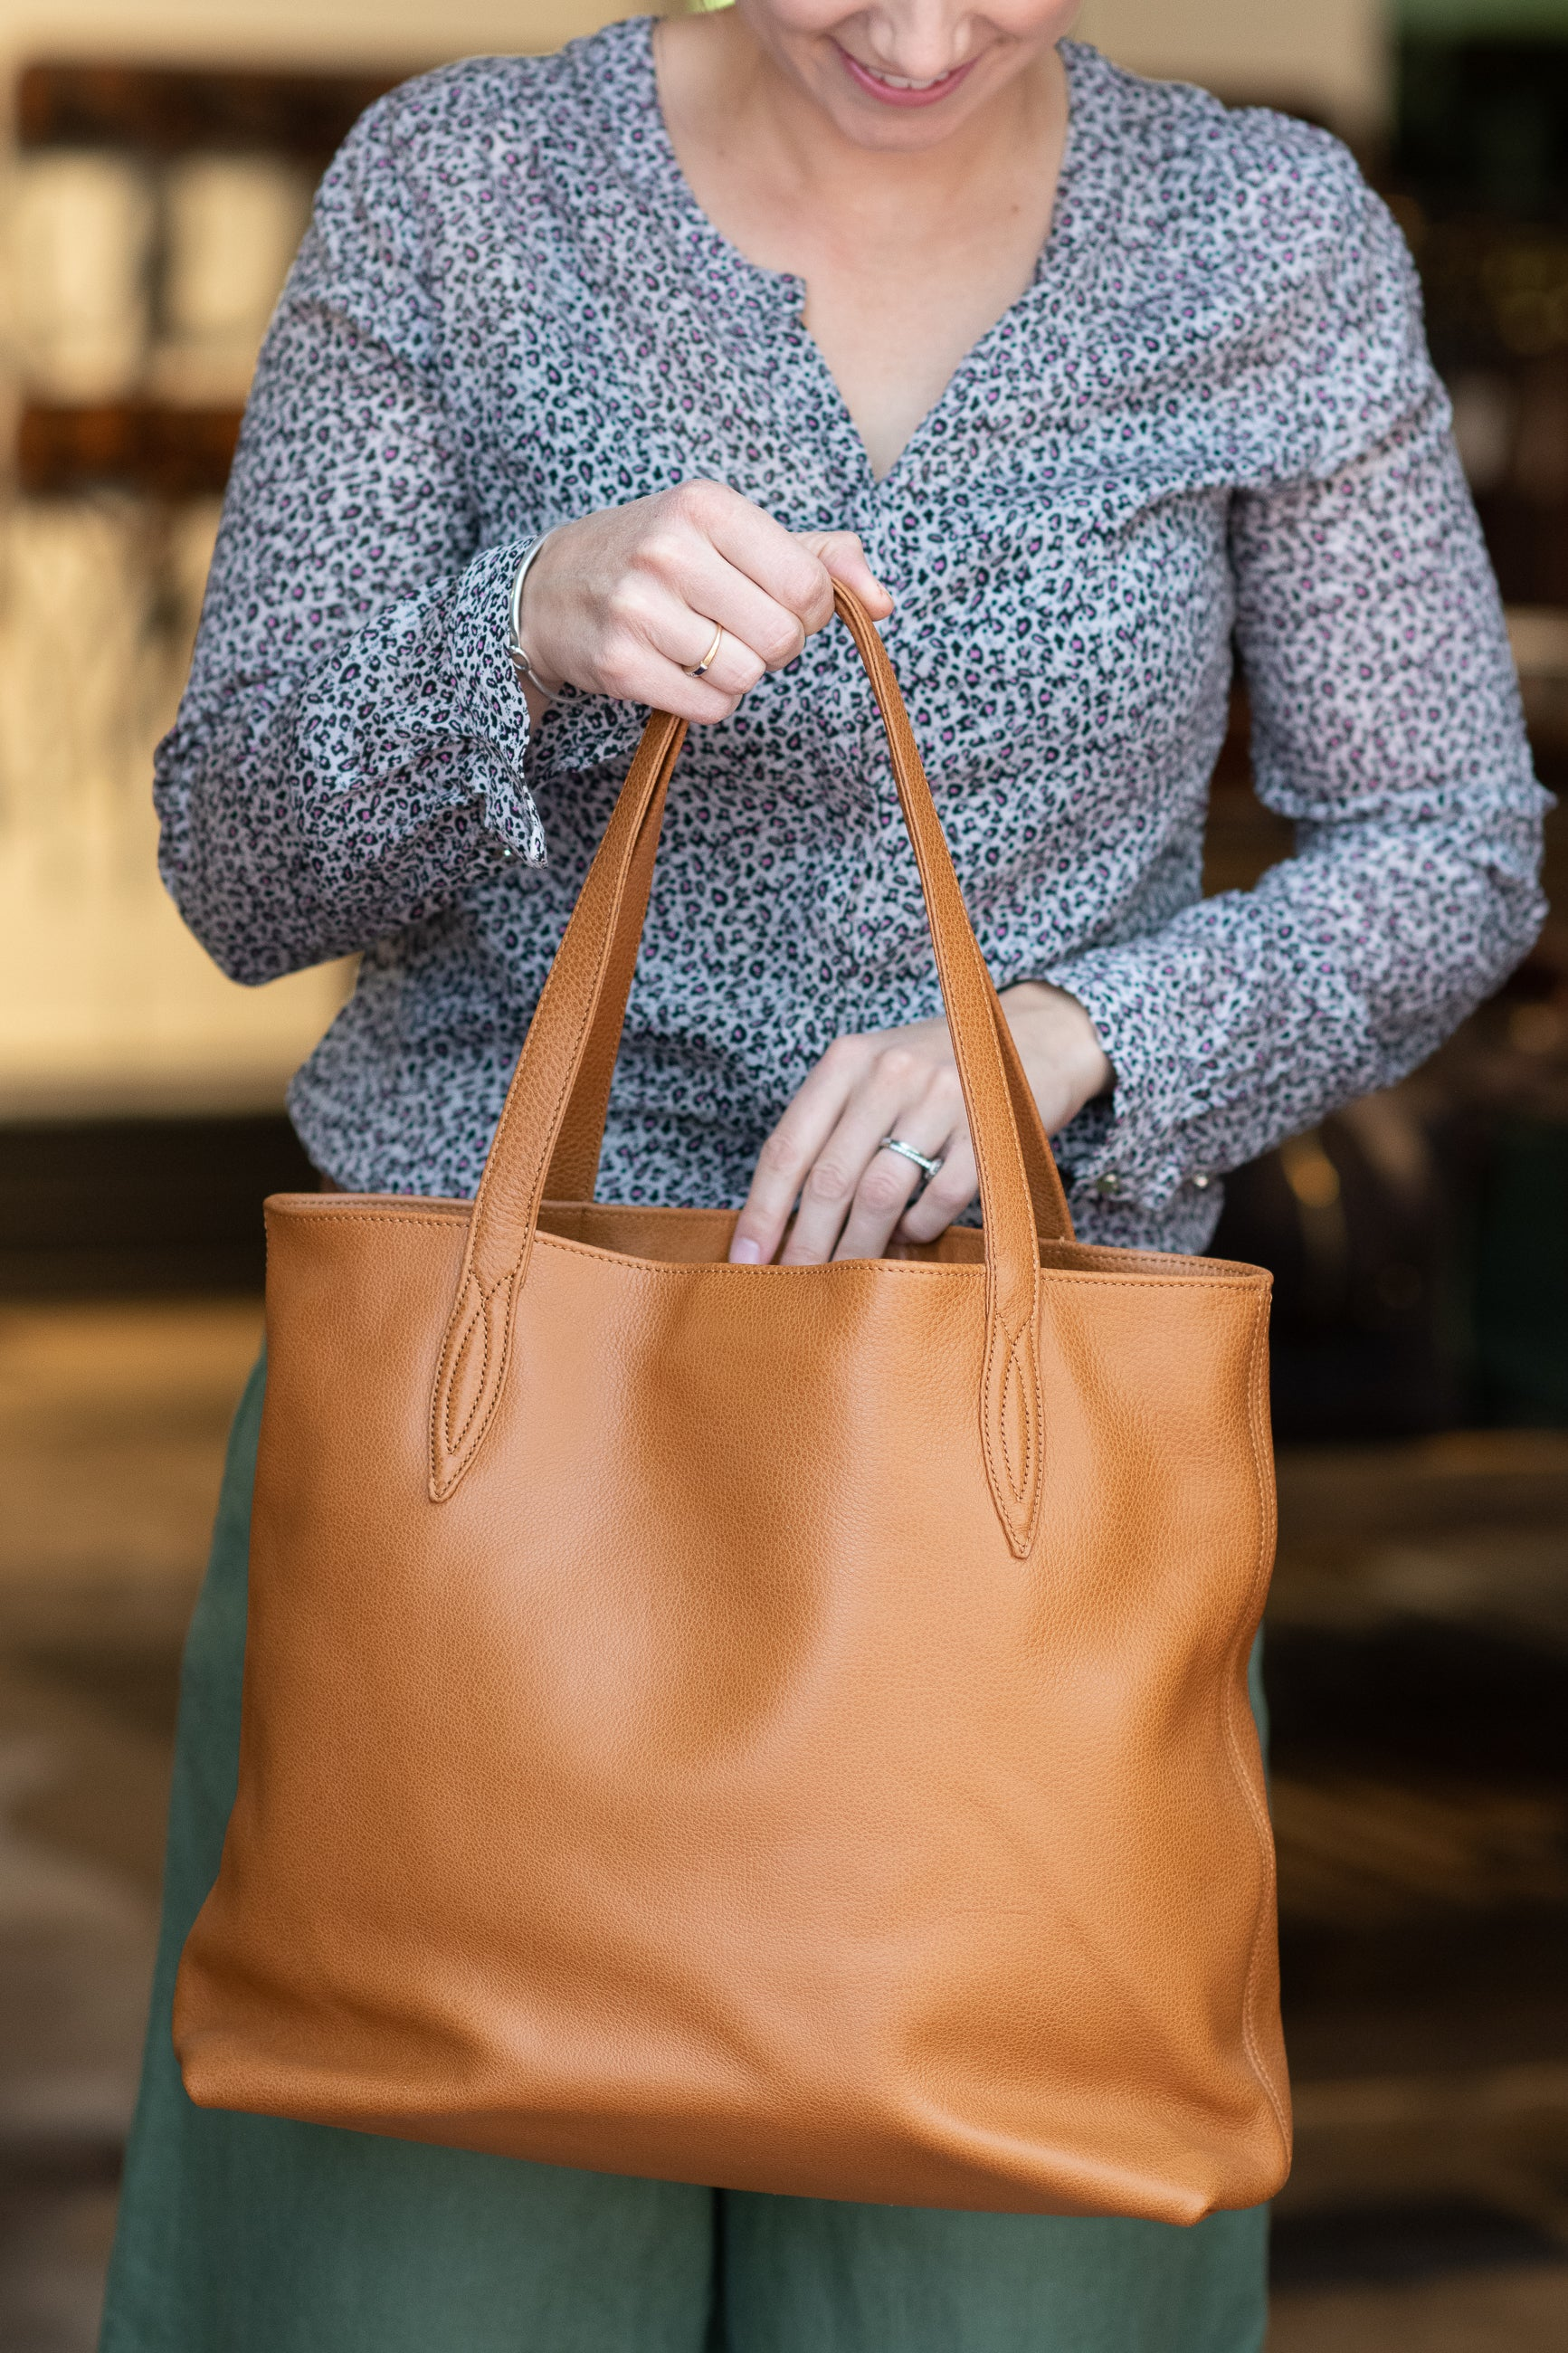 Annabella Tote Bag - an insider's inside perspective!